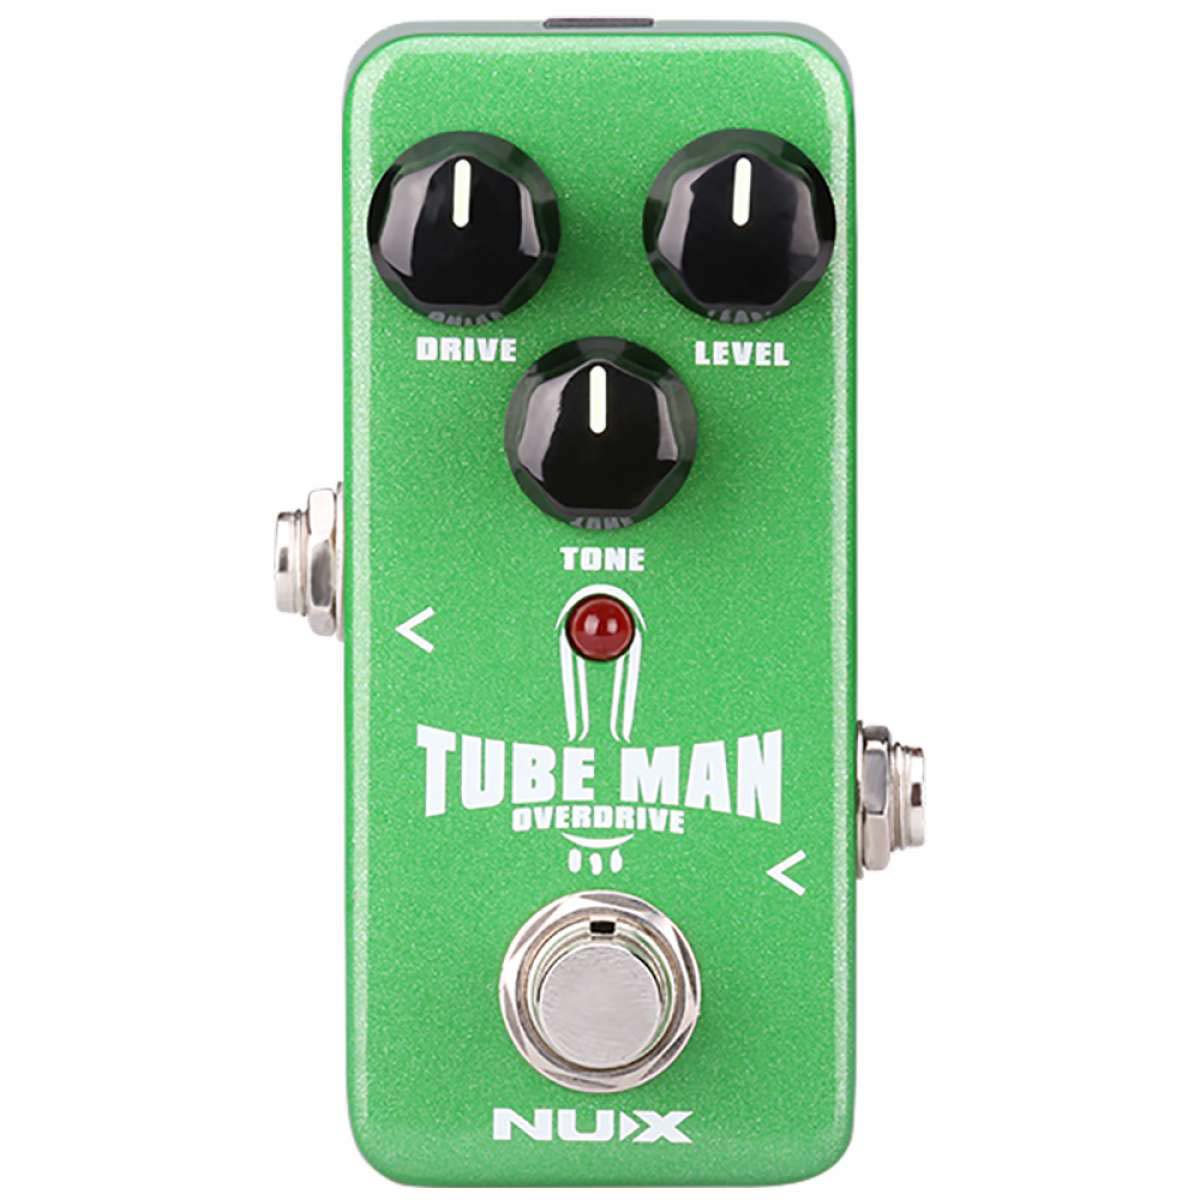 Nux NOD-2 Tube Man guitar-effekt-pedal